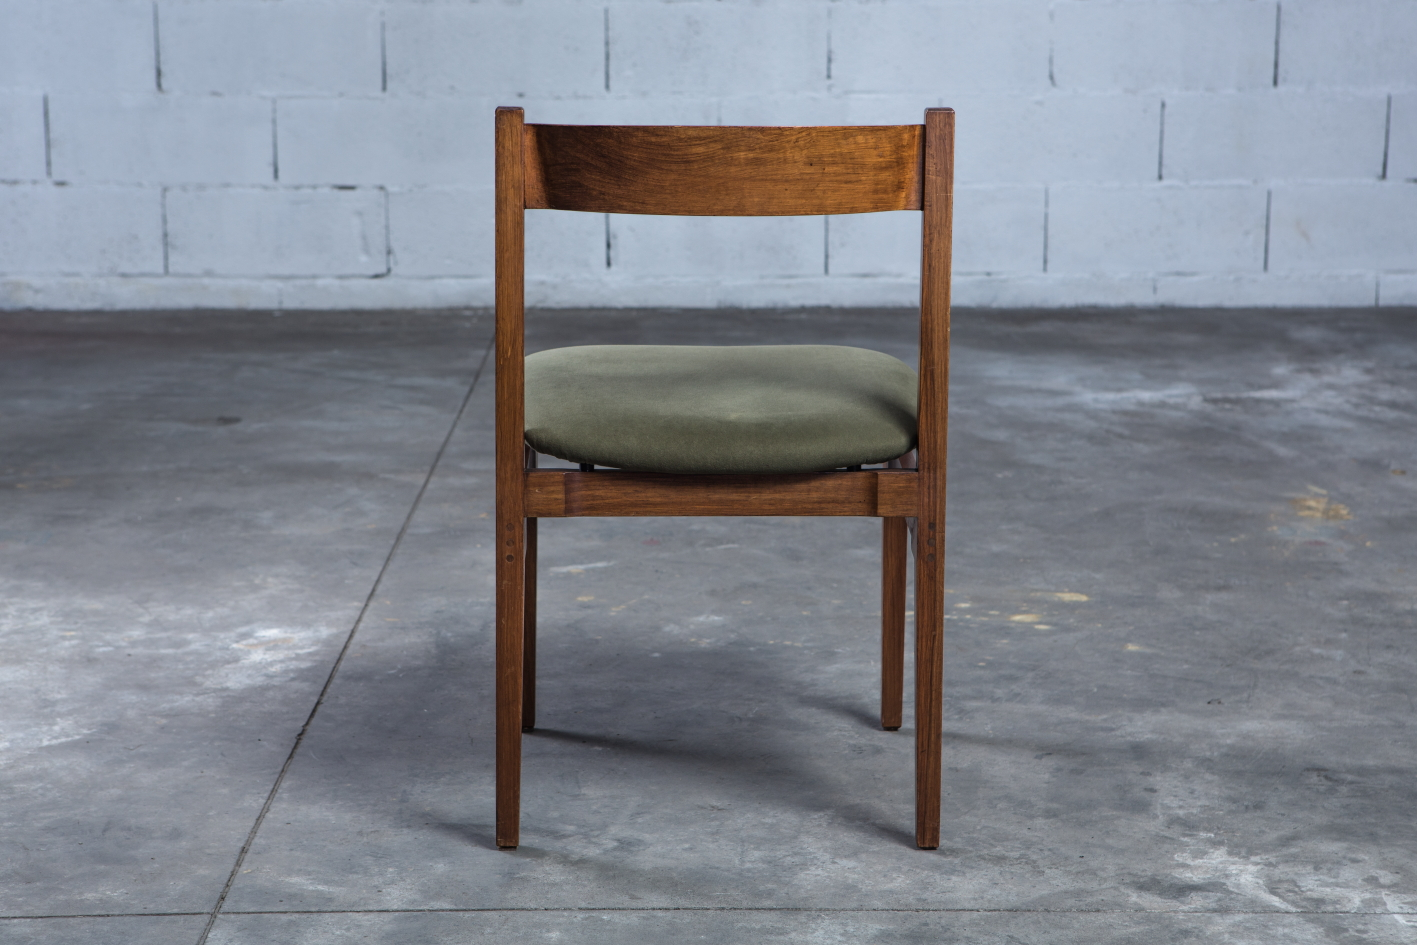 Model 104 chairs by Gianfranco Frattini for Cassina - Back view